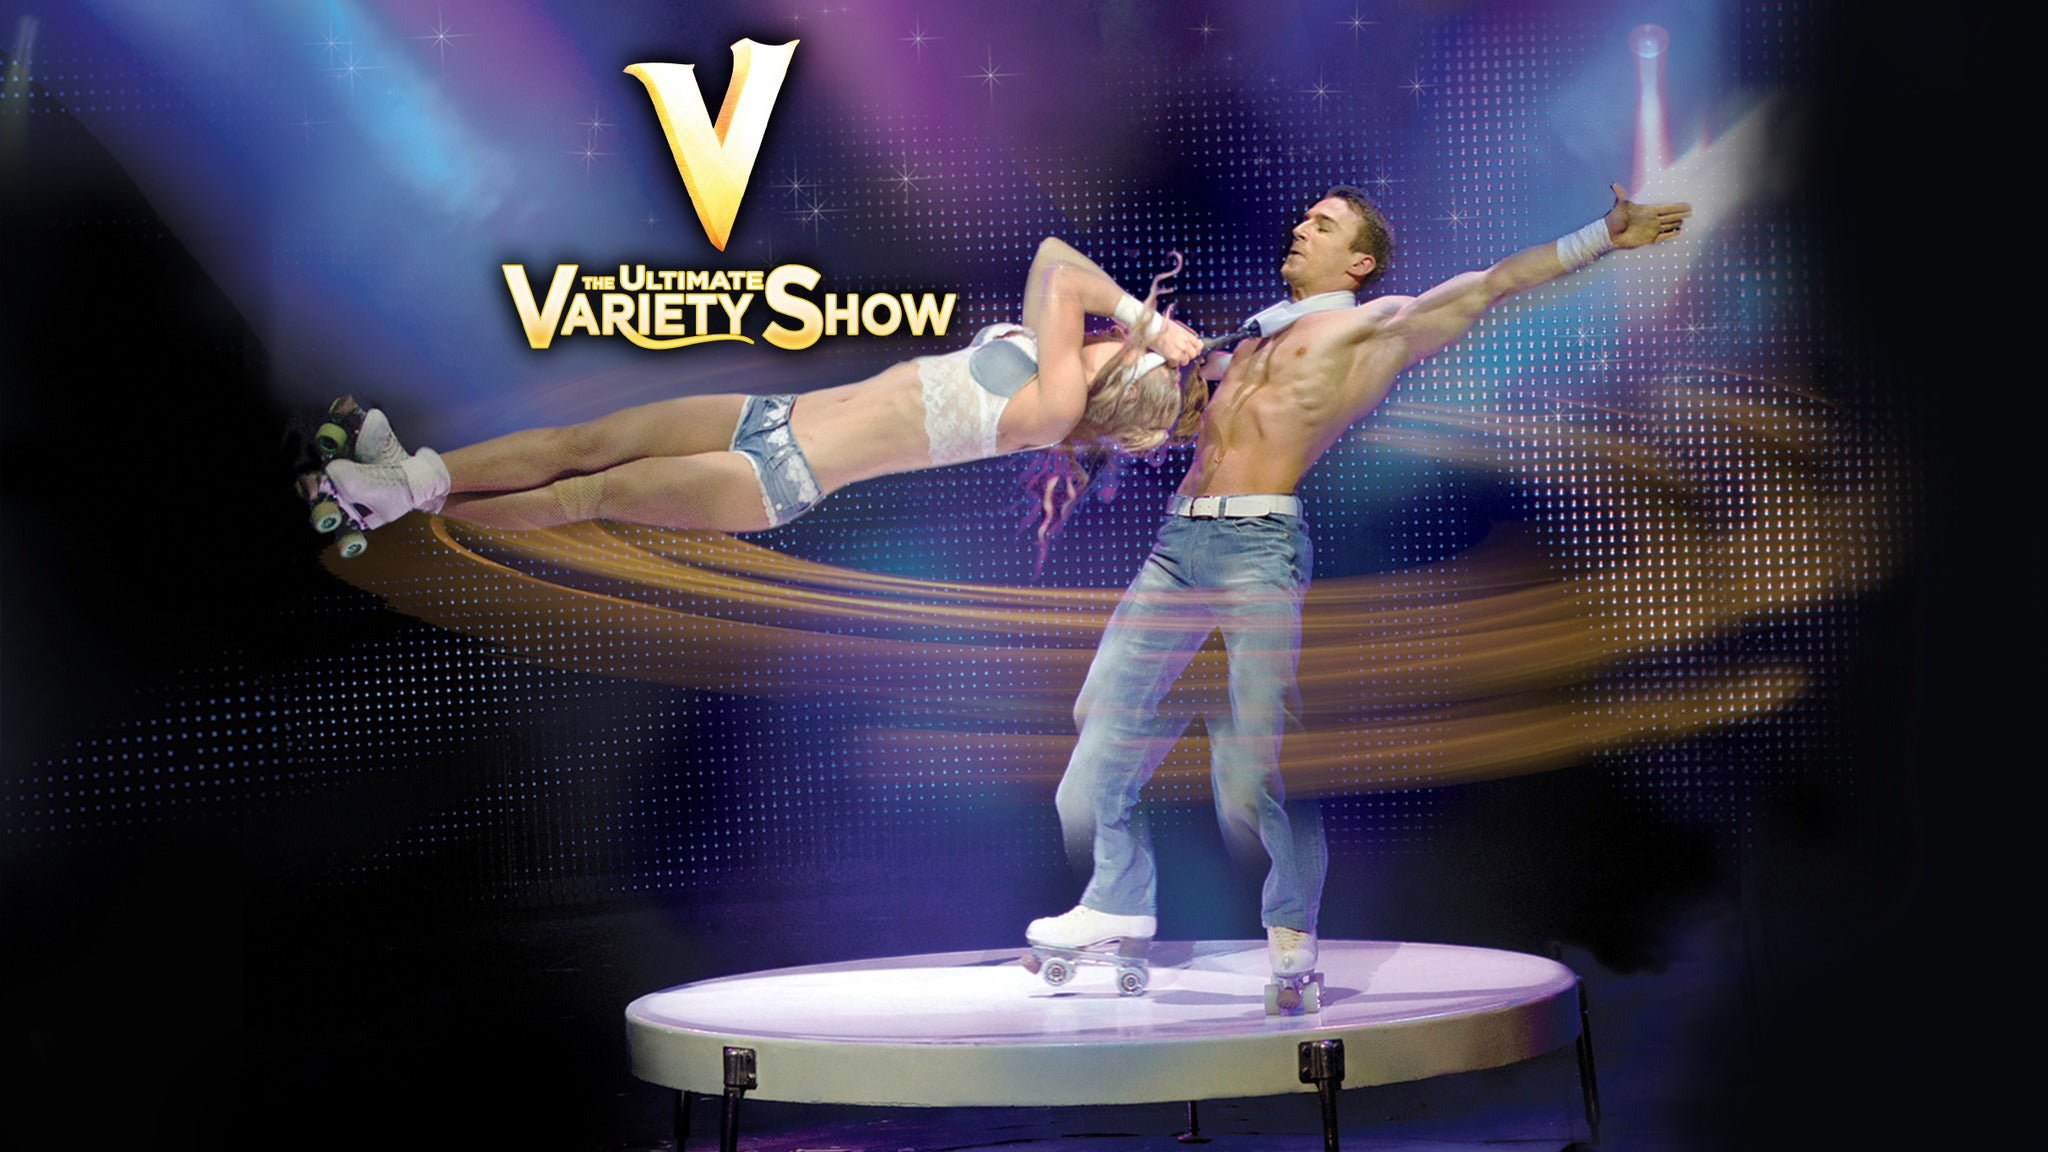 V-The Ultimate Variety Show